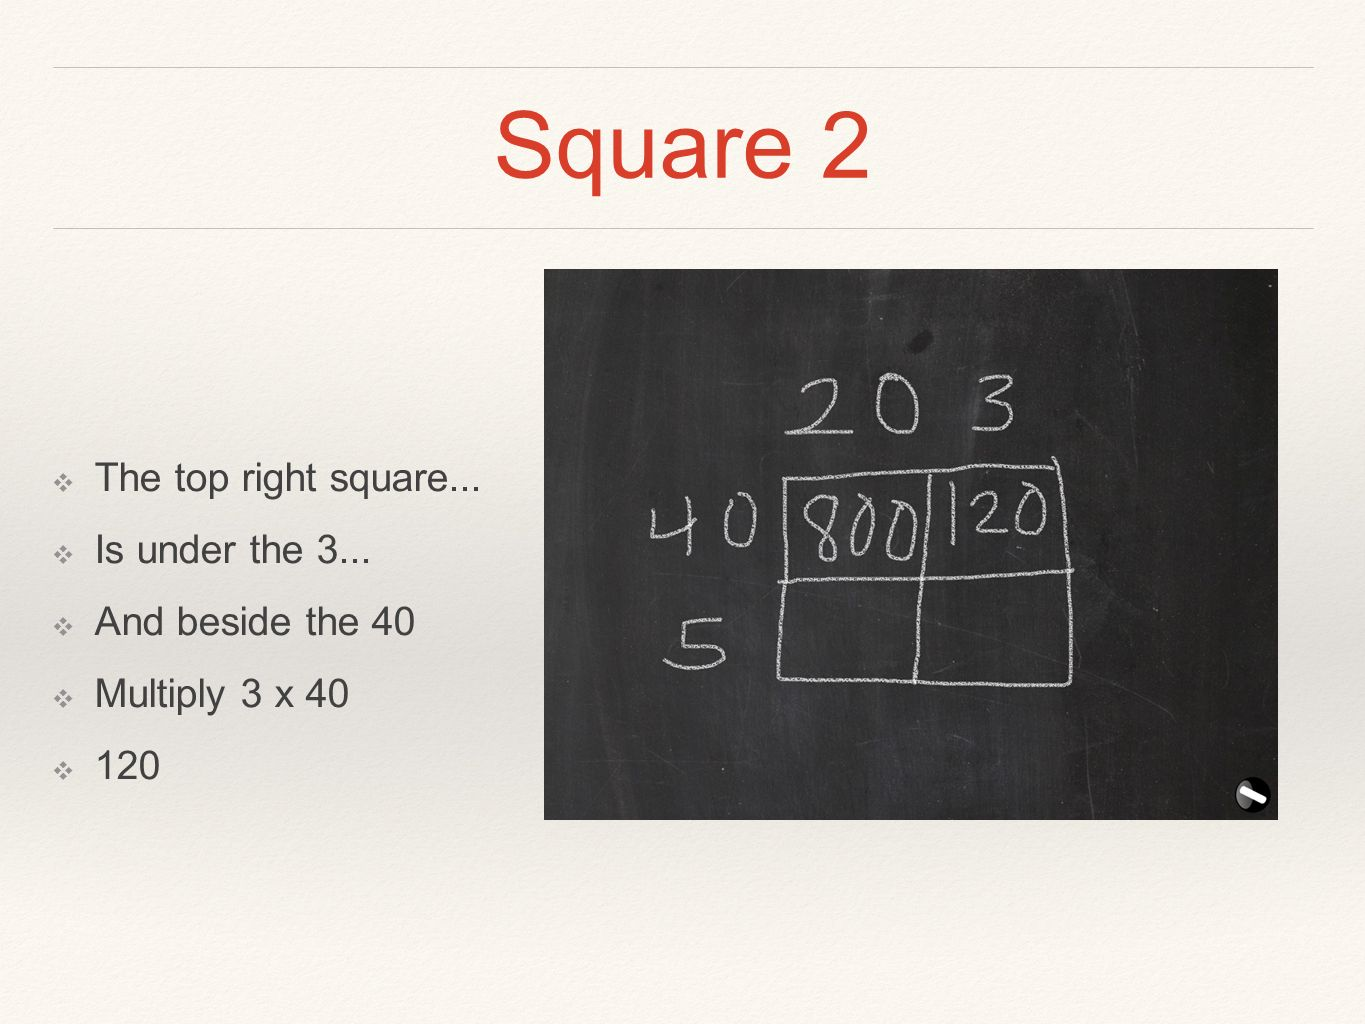 Square 2 ❖ The top right square... ❖ Is under the 3... ❖ And beside the 40 ❖ Multiply 3 x 40 ❖ 120